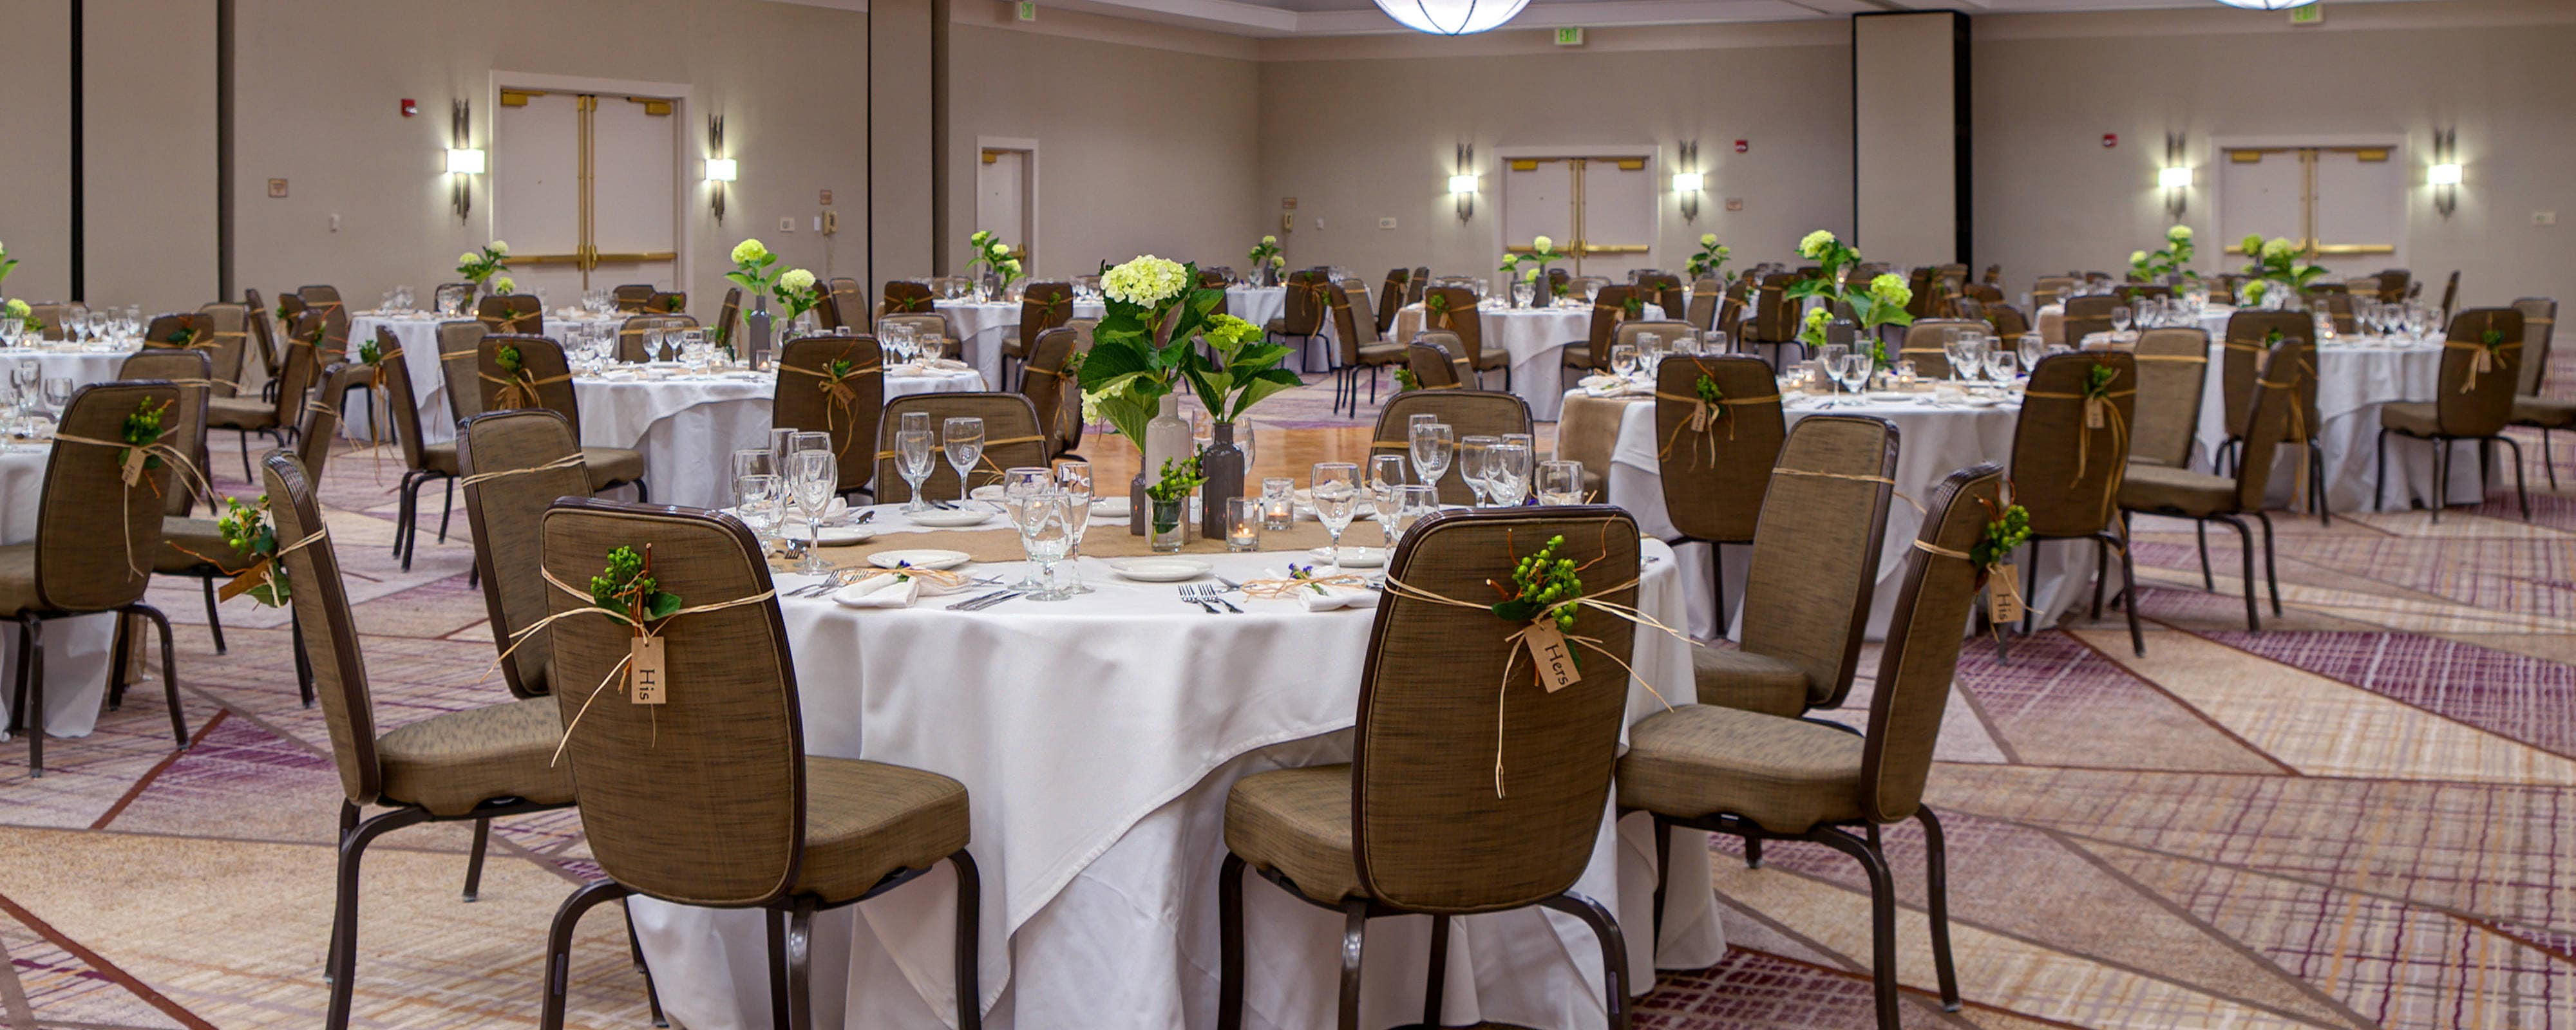 Houston Hotel Weddings And Venues Houston Marriott North